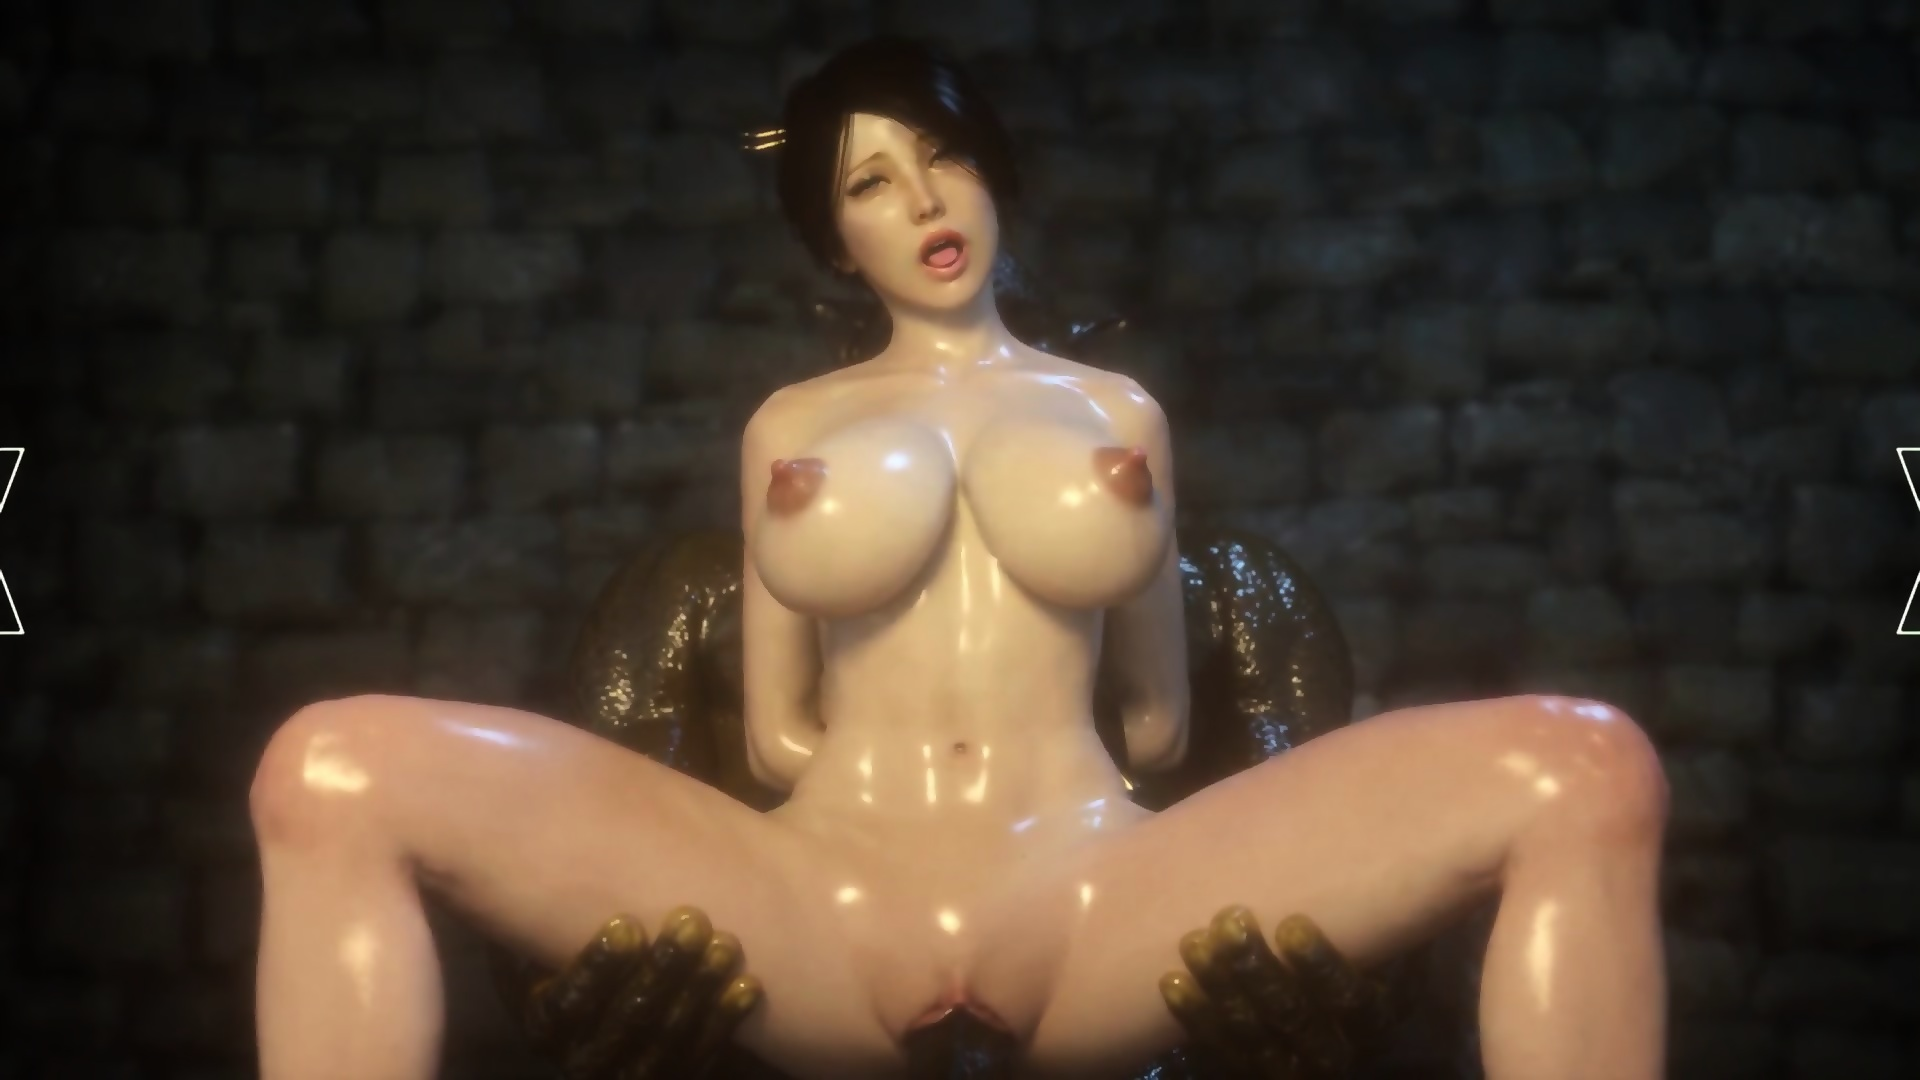 3D Sex Big Tits 3d animation moster sex with a red hair big tits babe